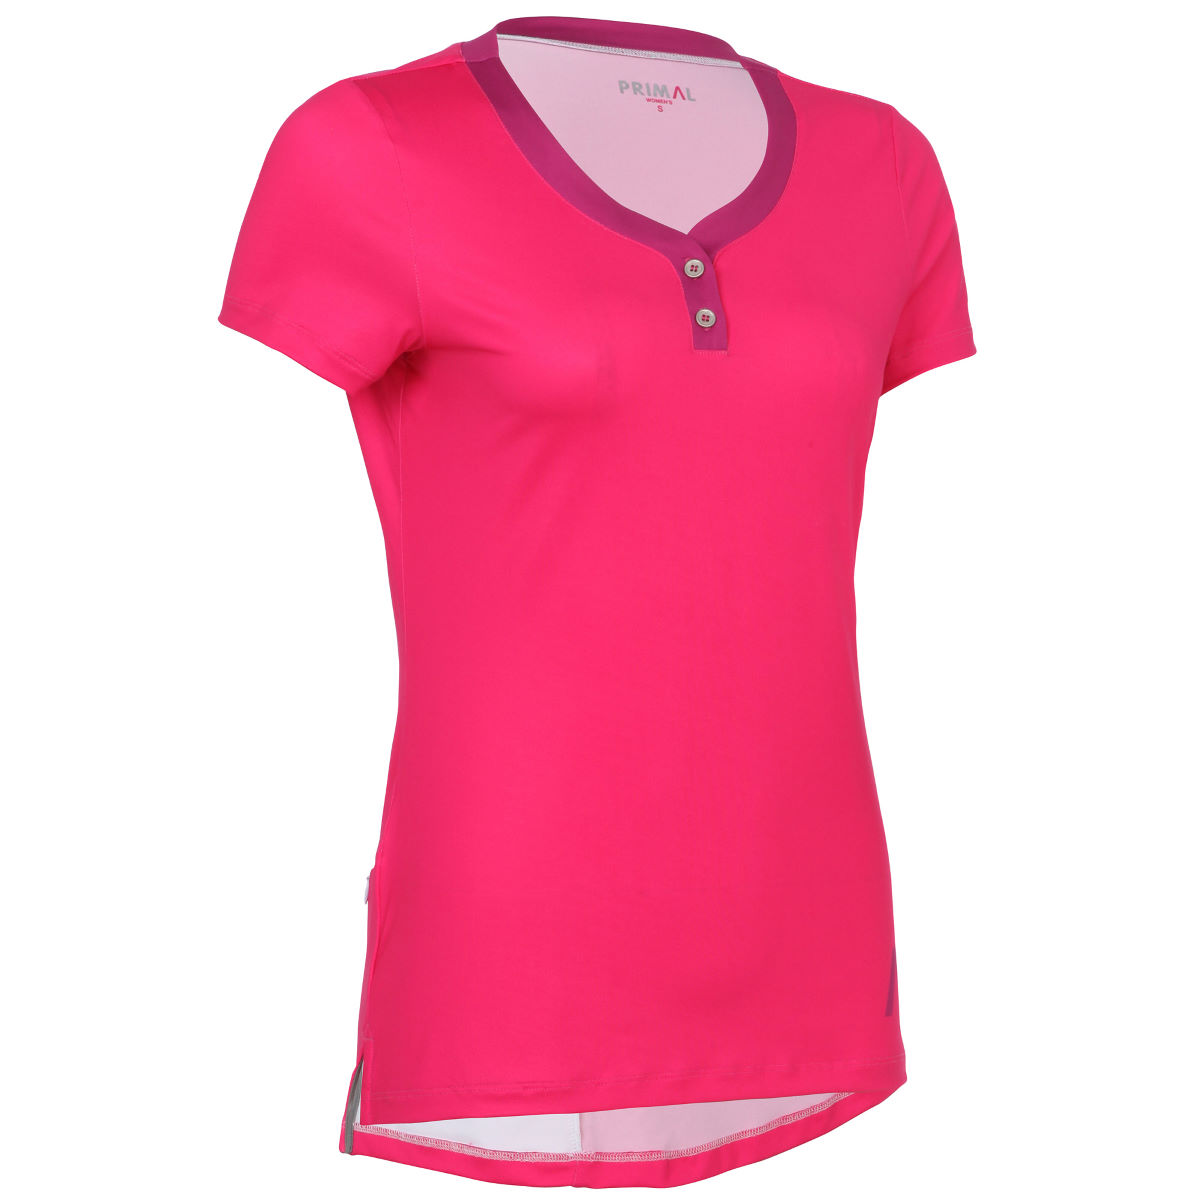 Maillot Femme Primal Henley - S Rose Maillots vélo à manches courtes